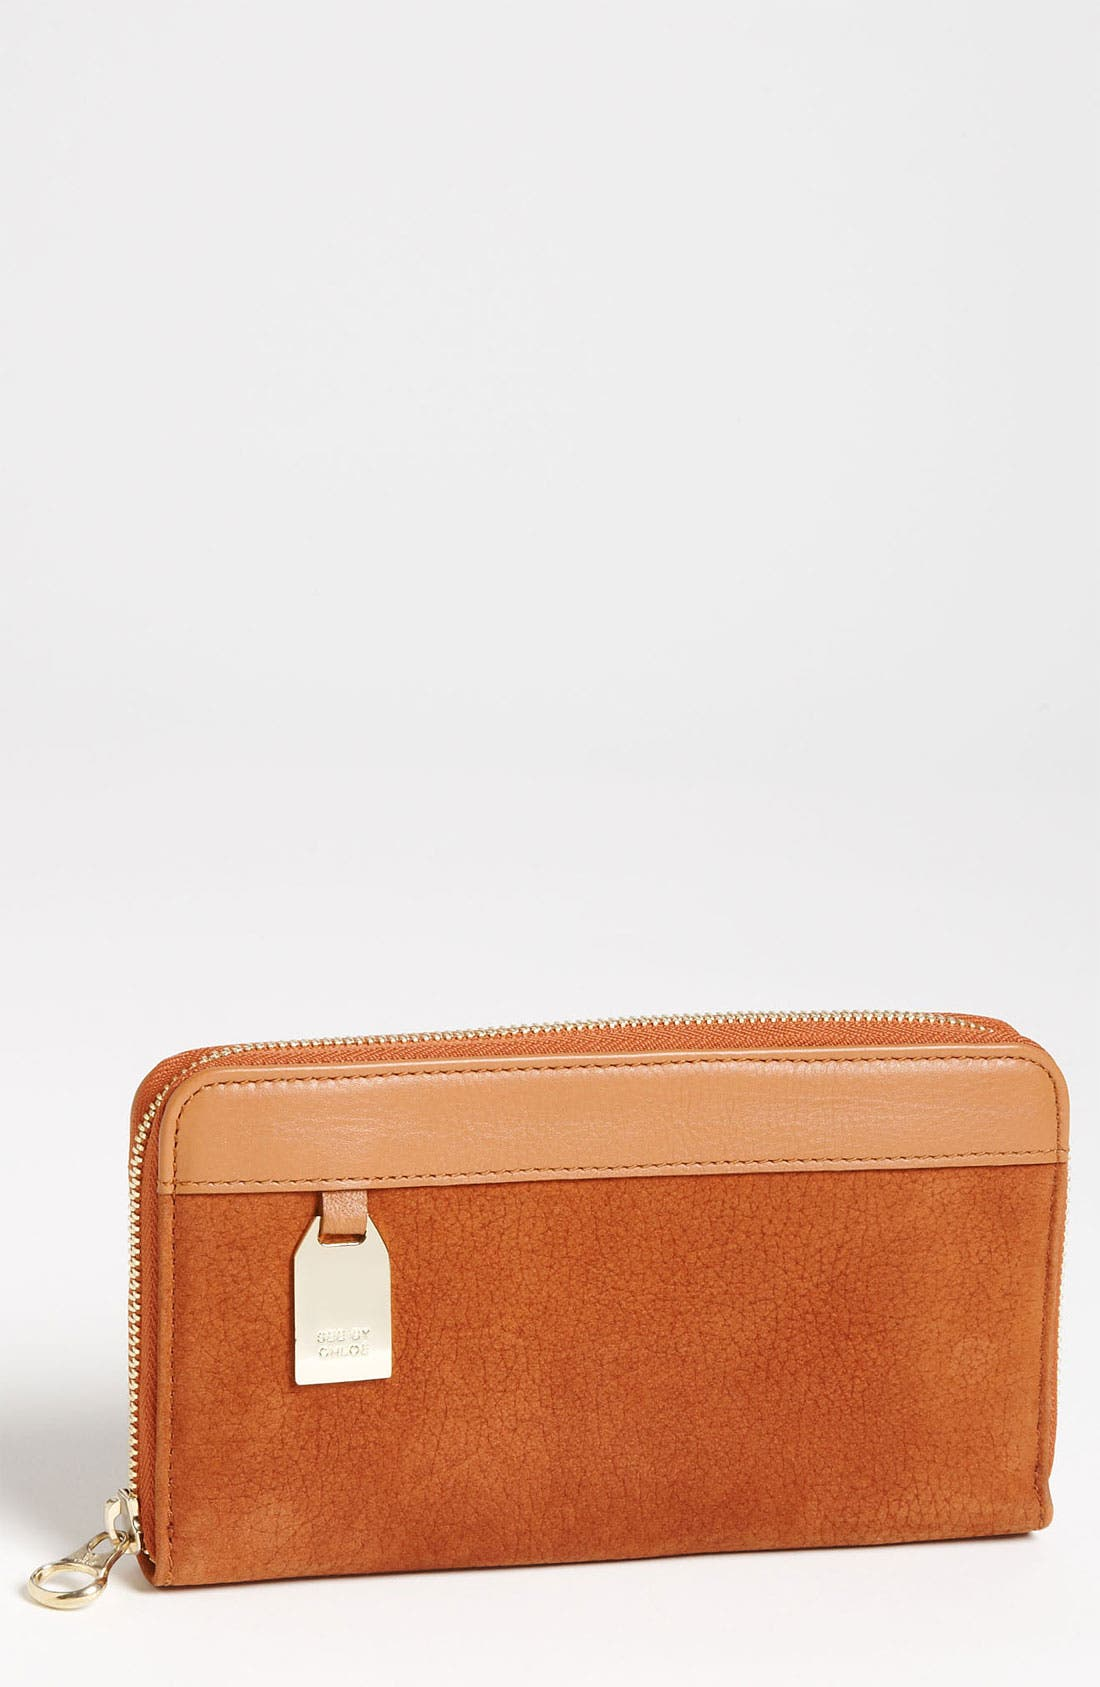 Main Image - See By Chloé Long Zip Around Wallet